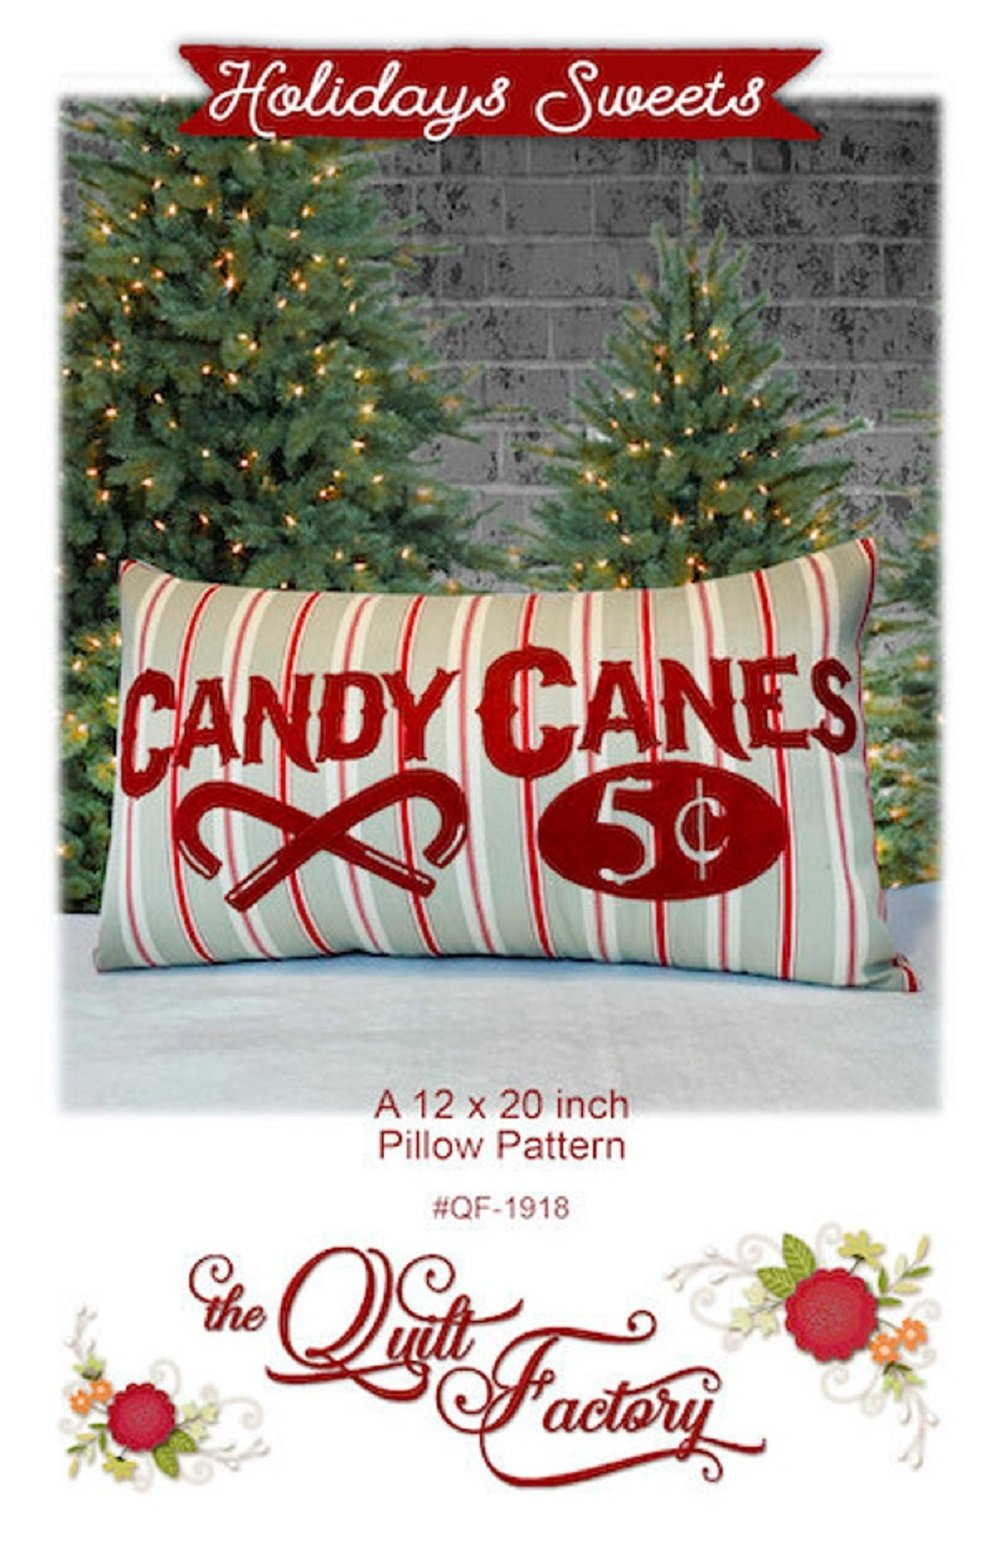 Holiday Sweets Pillow Pattern by The Quilt Factory